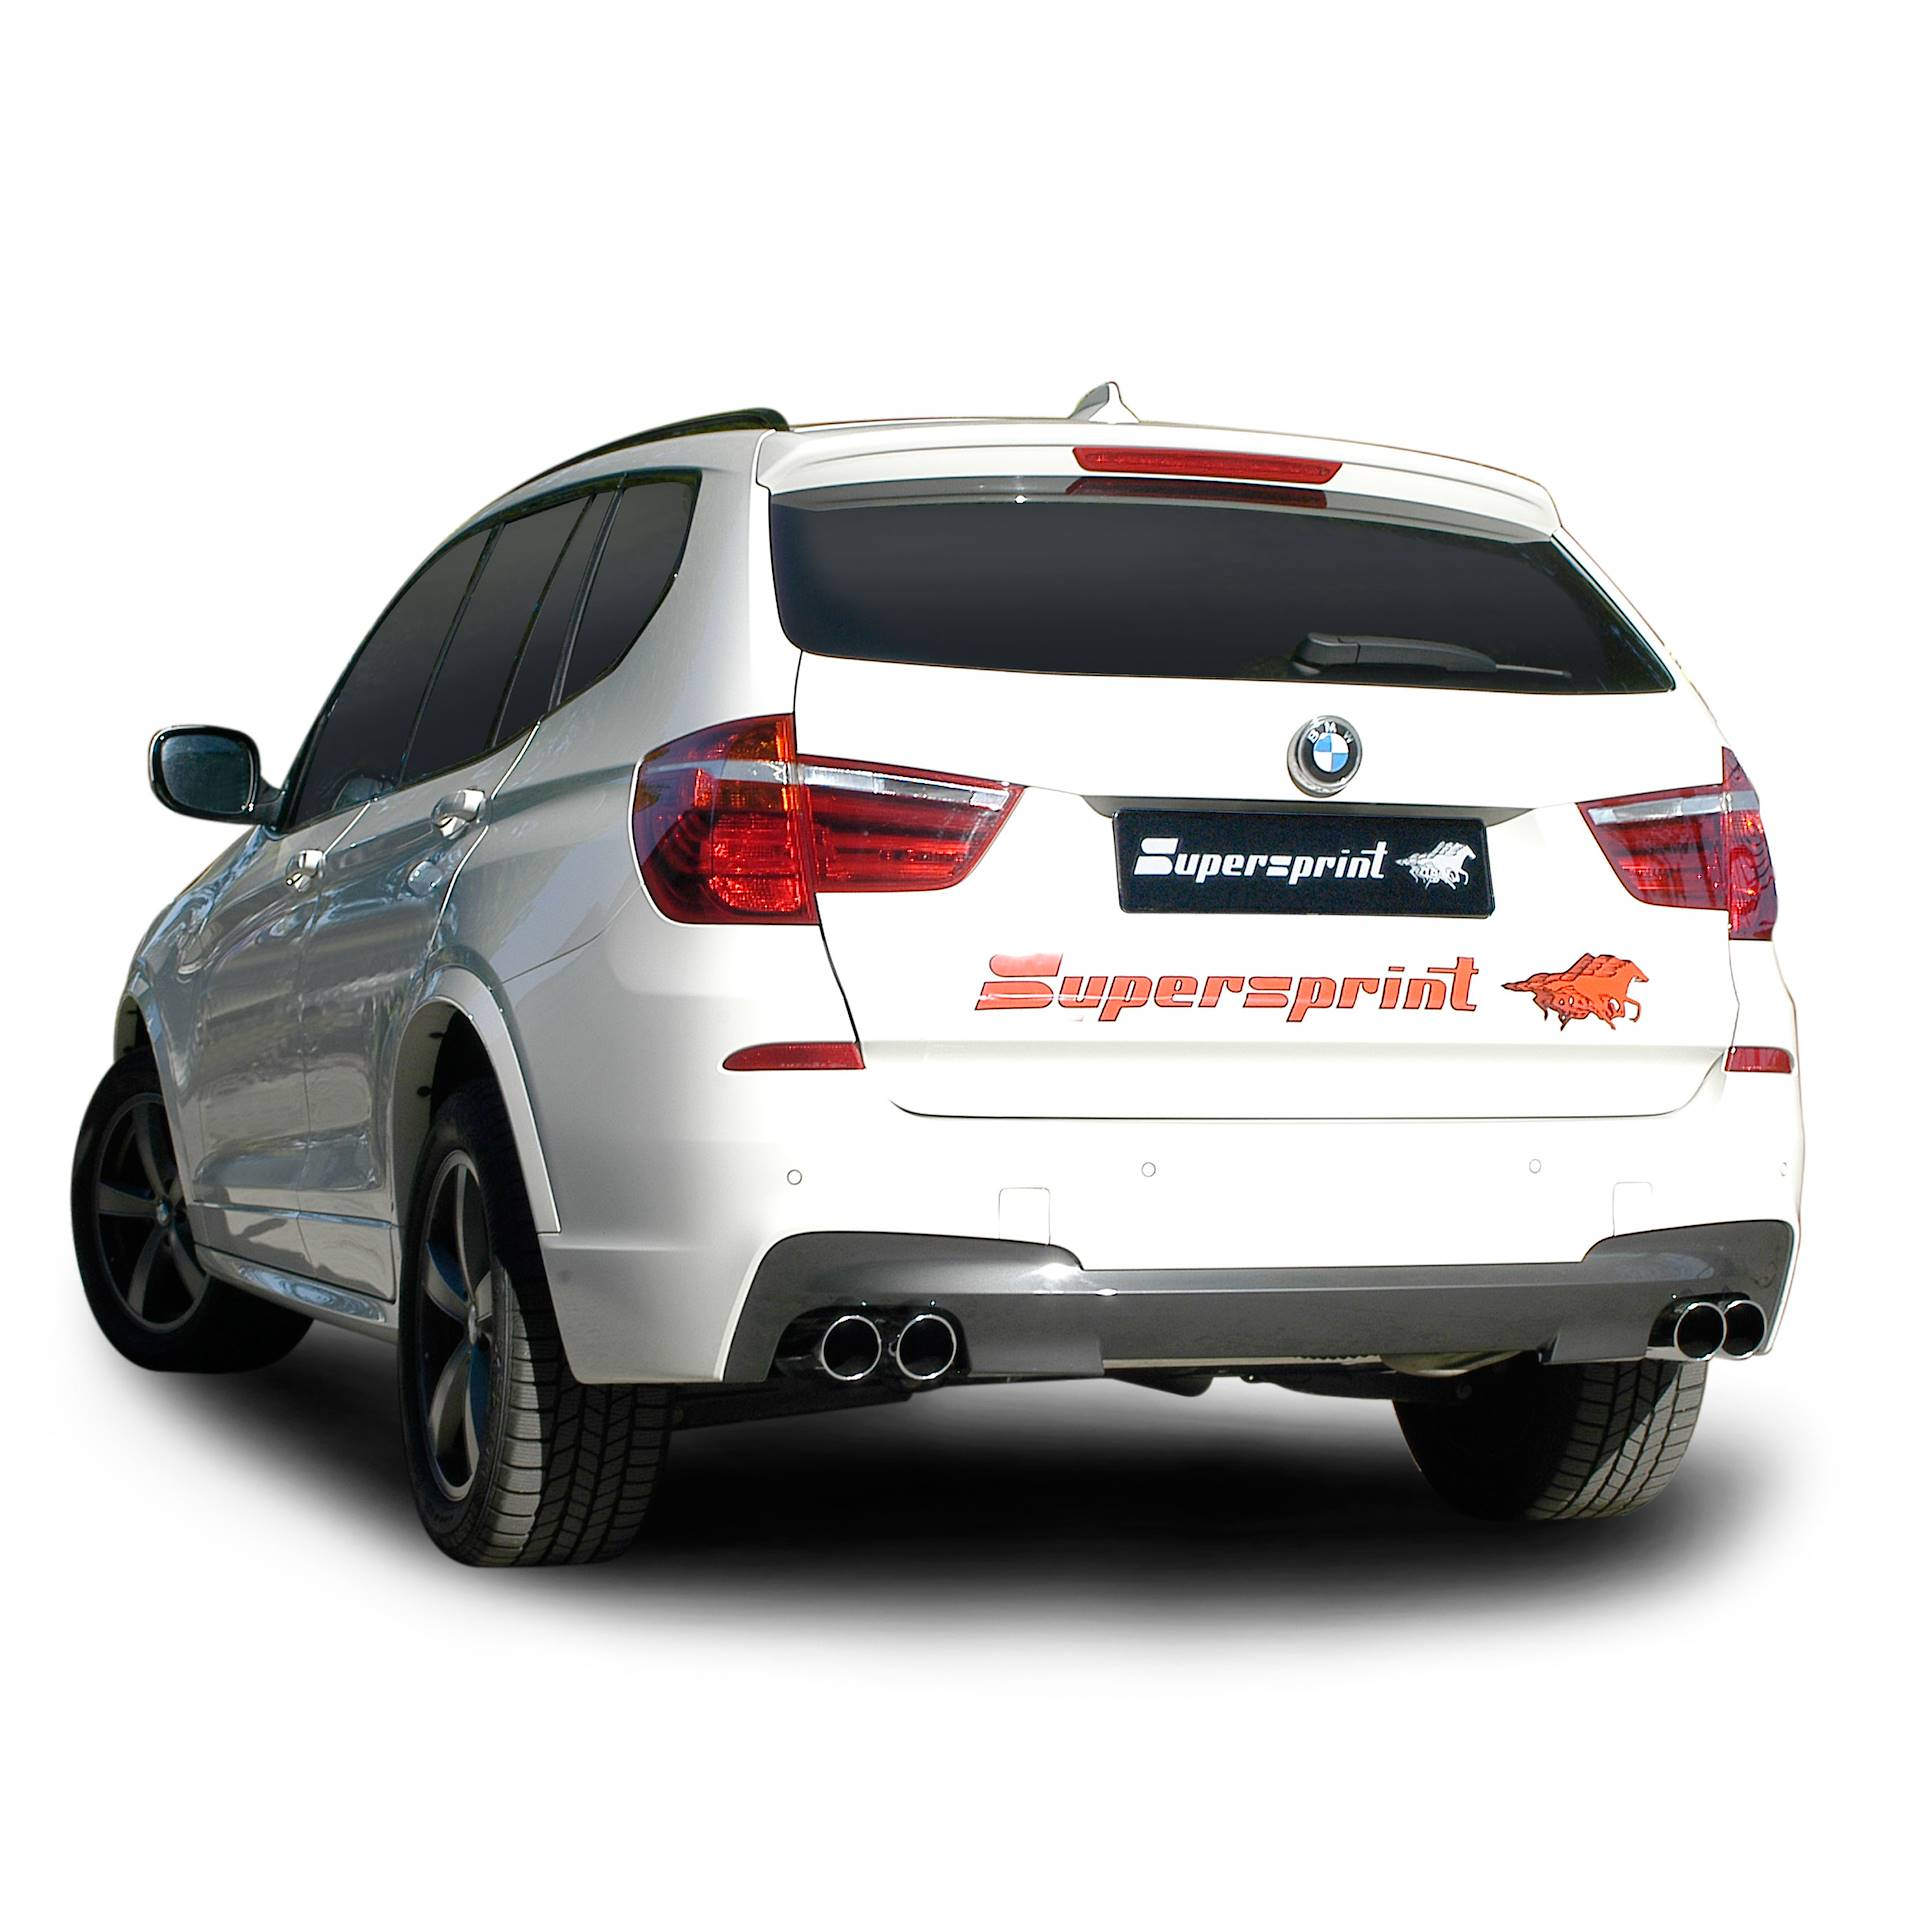 bmw f25 x3 30d 248 hp 258 hp 2011 bmw exhaust systems. Black Bedroom Furniture Sets. Home Design Ideas